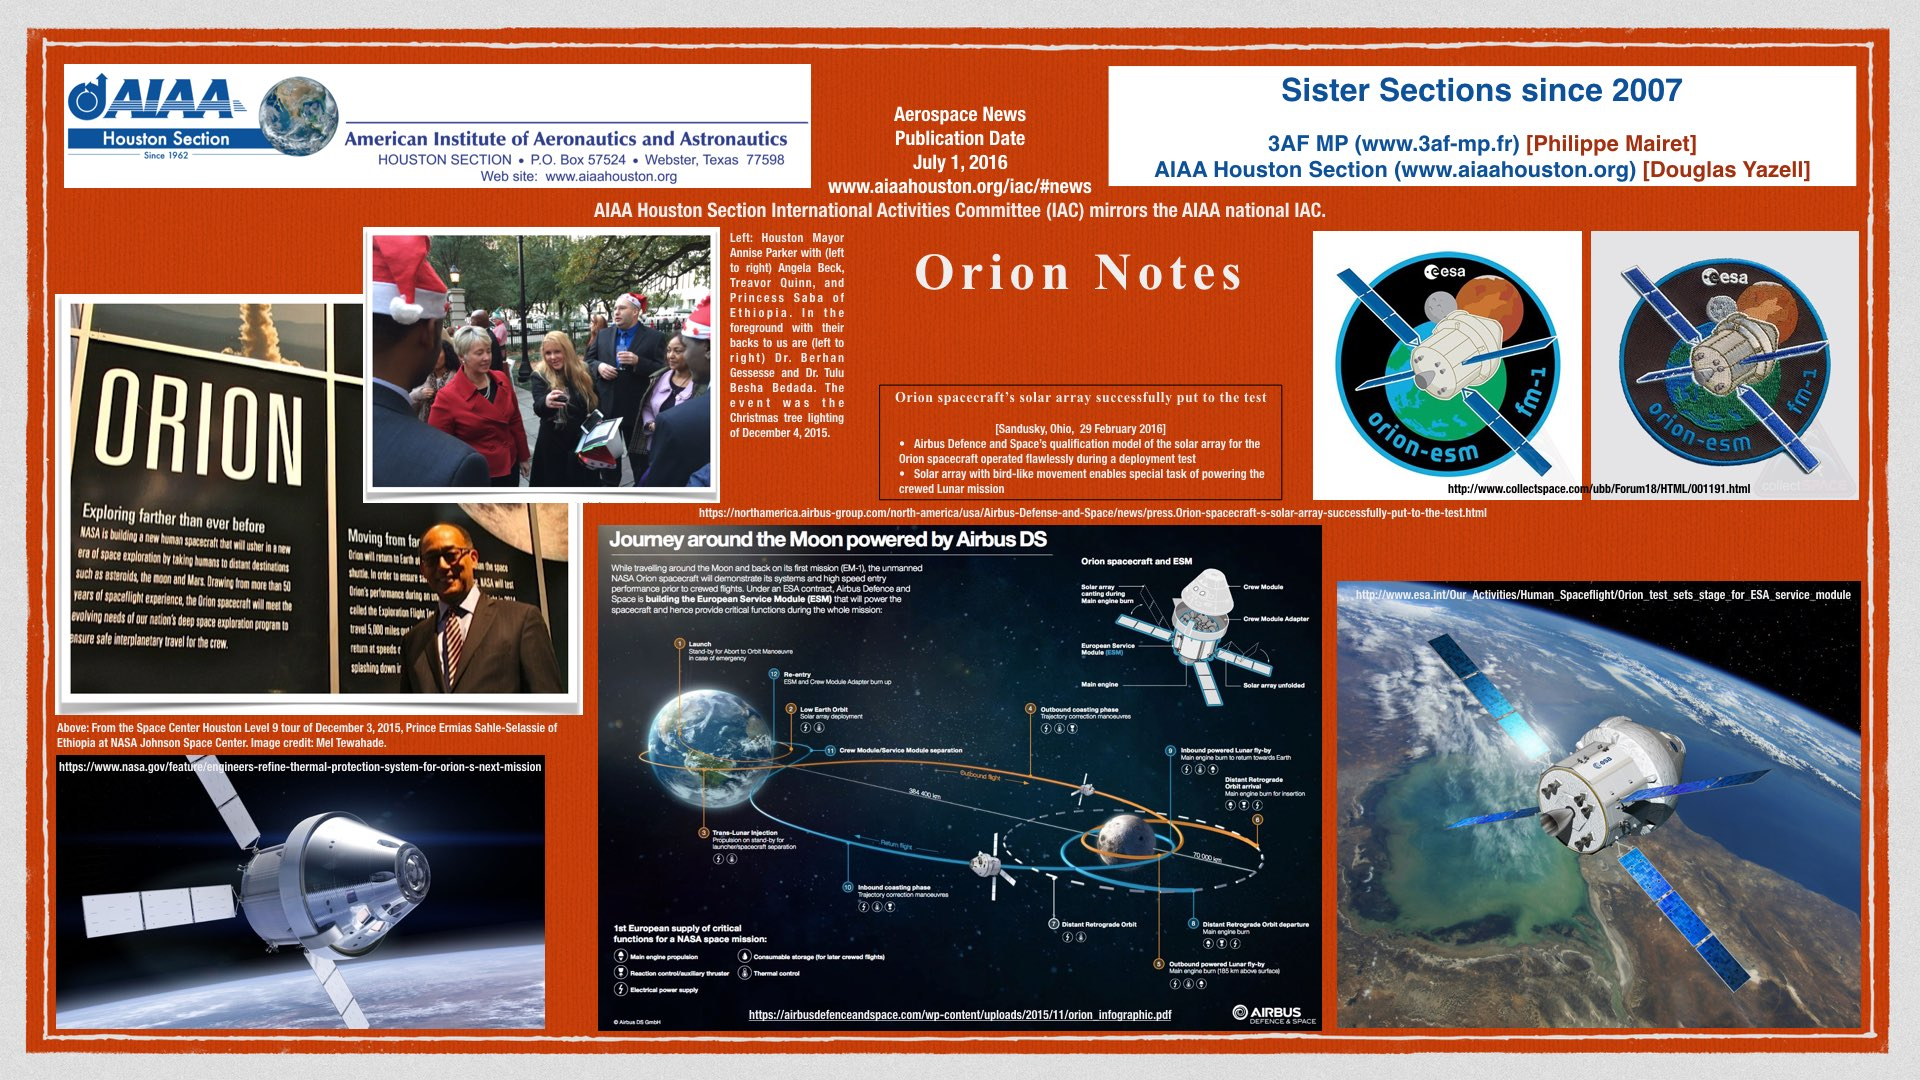 Above: Orion notes. (Click to zoom.)